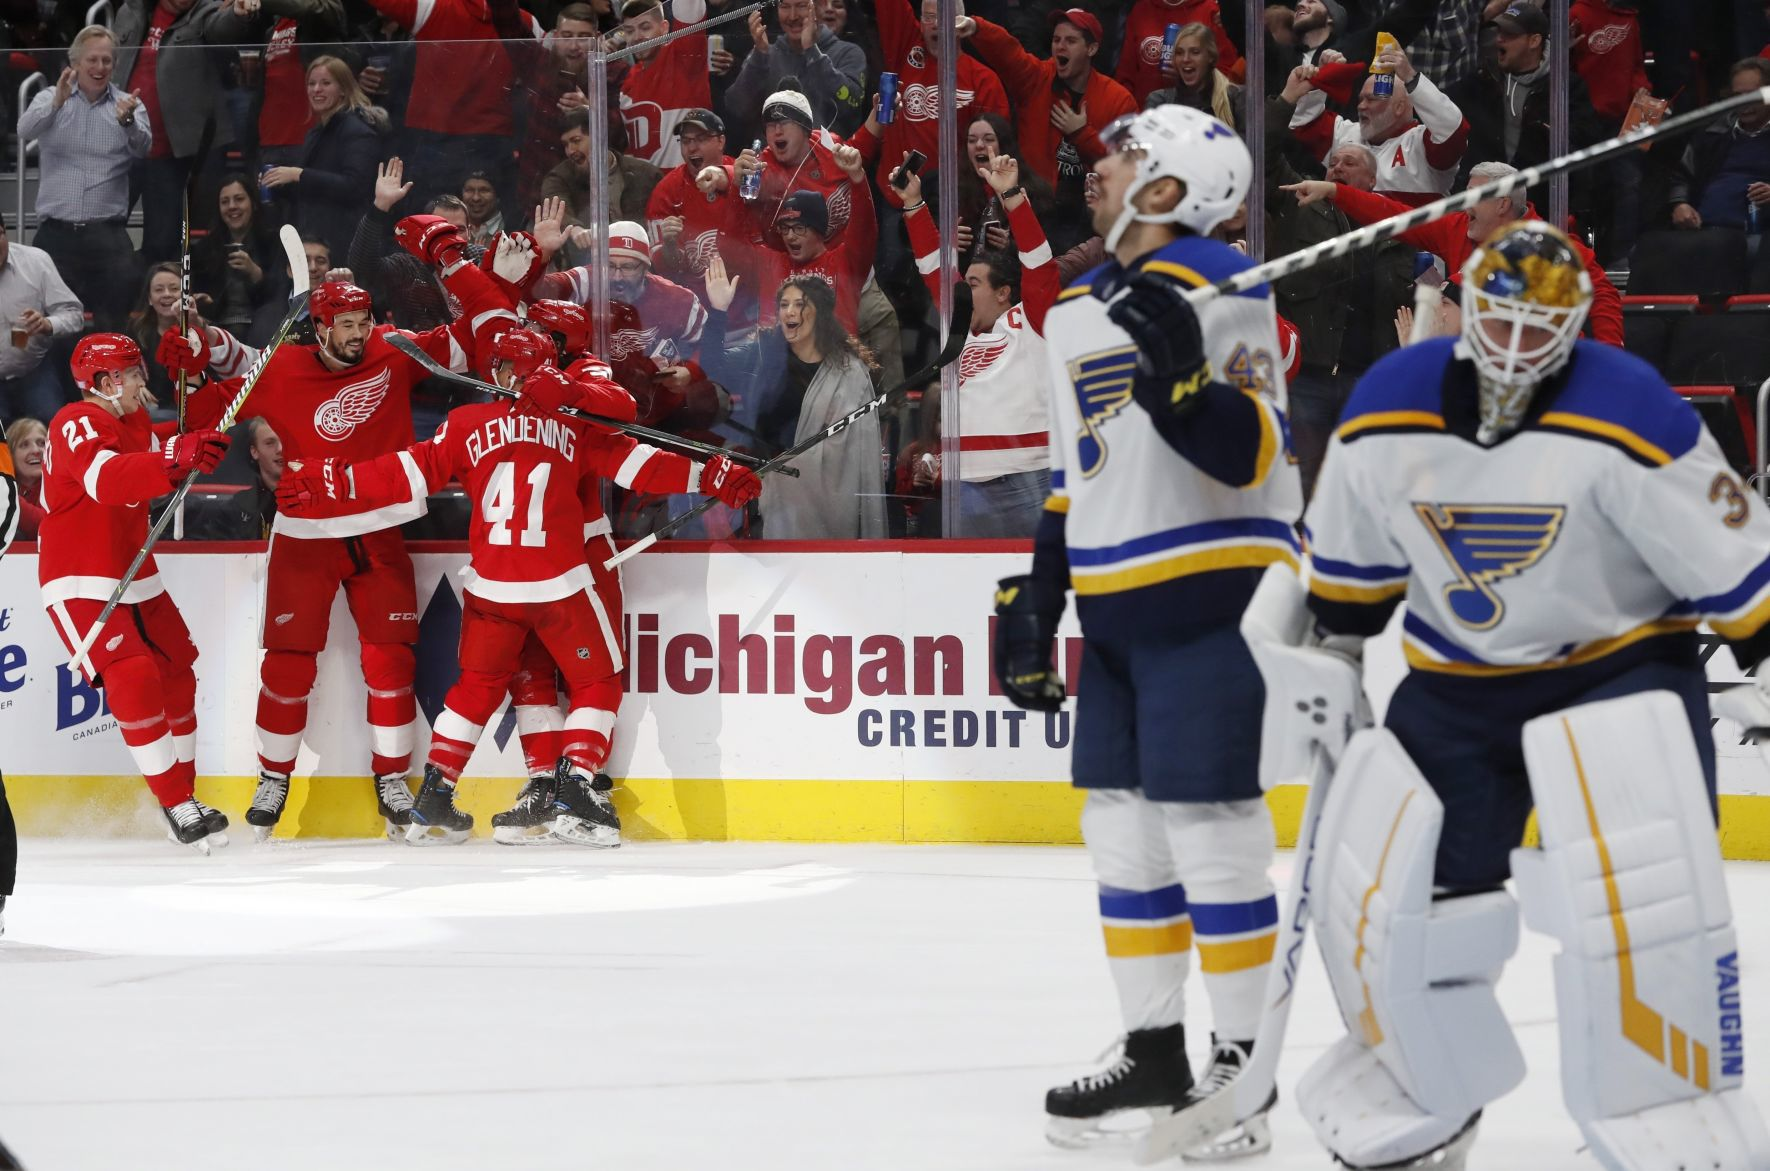 Blues Rally From Three-goal Deficit, Only To Suffer Another One-goal Loss